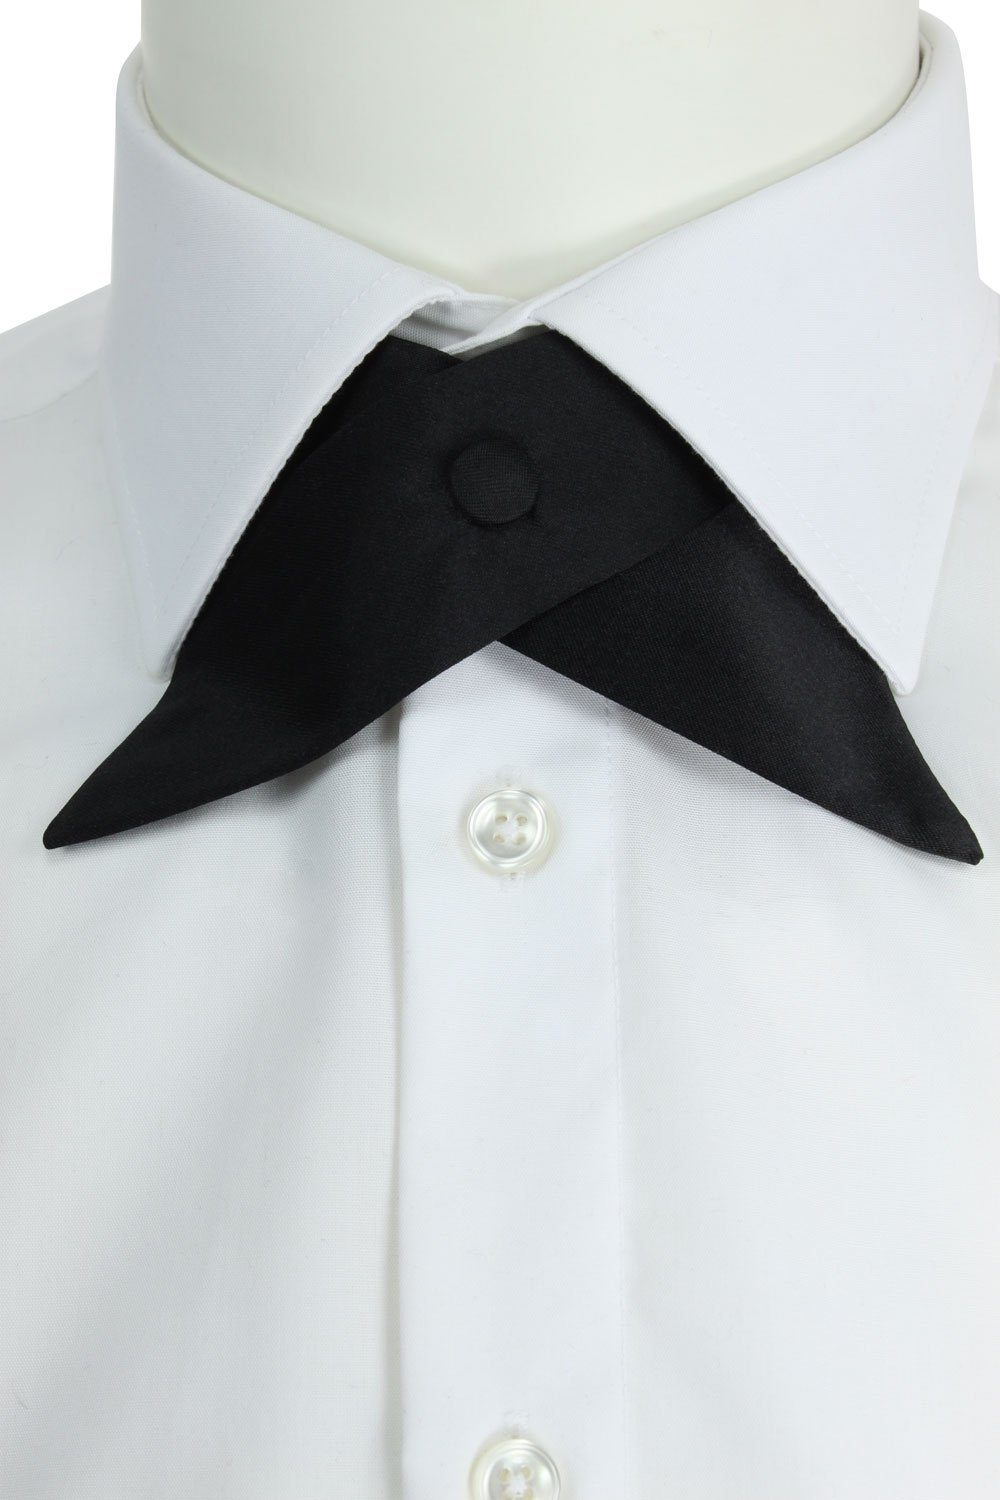 Black Satin or Velvet Crossover Bow Tie with Diamante Silver Gold Edged Button